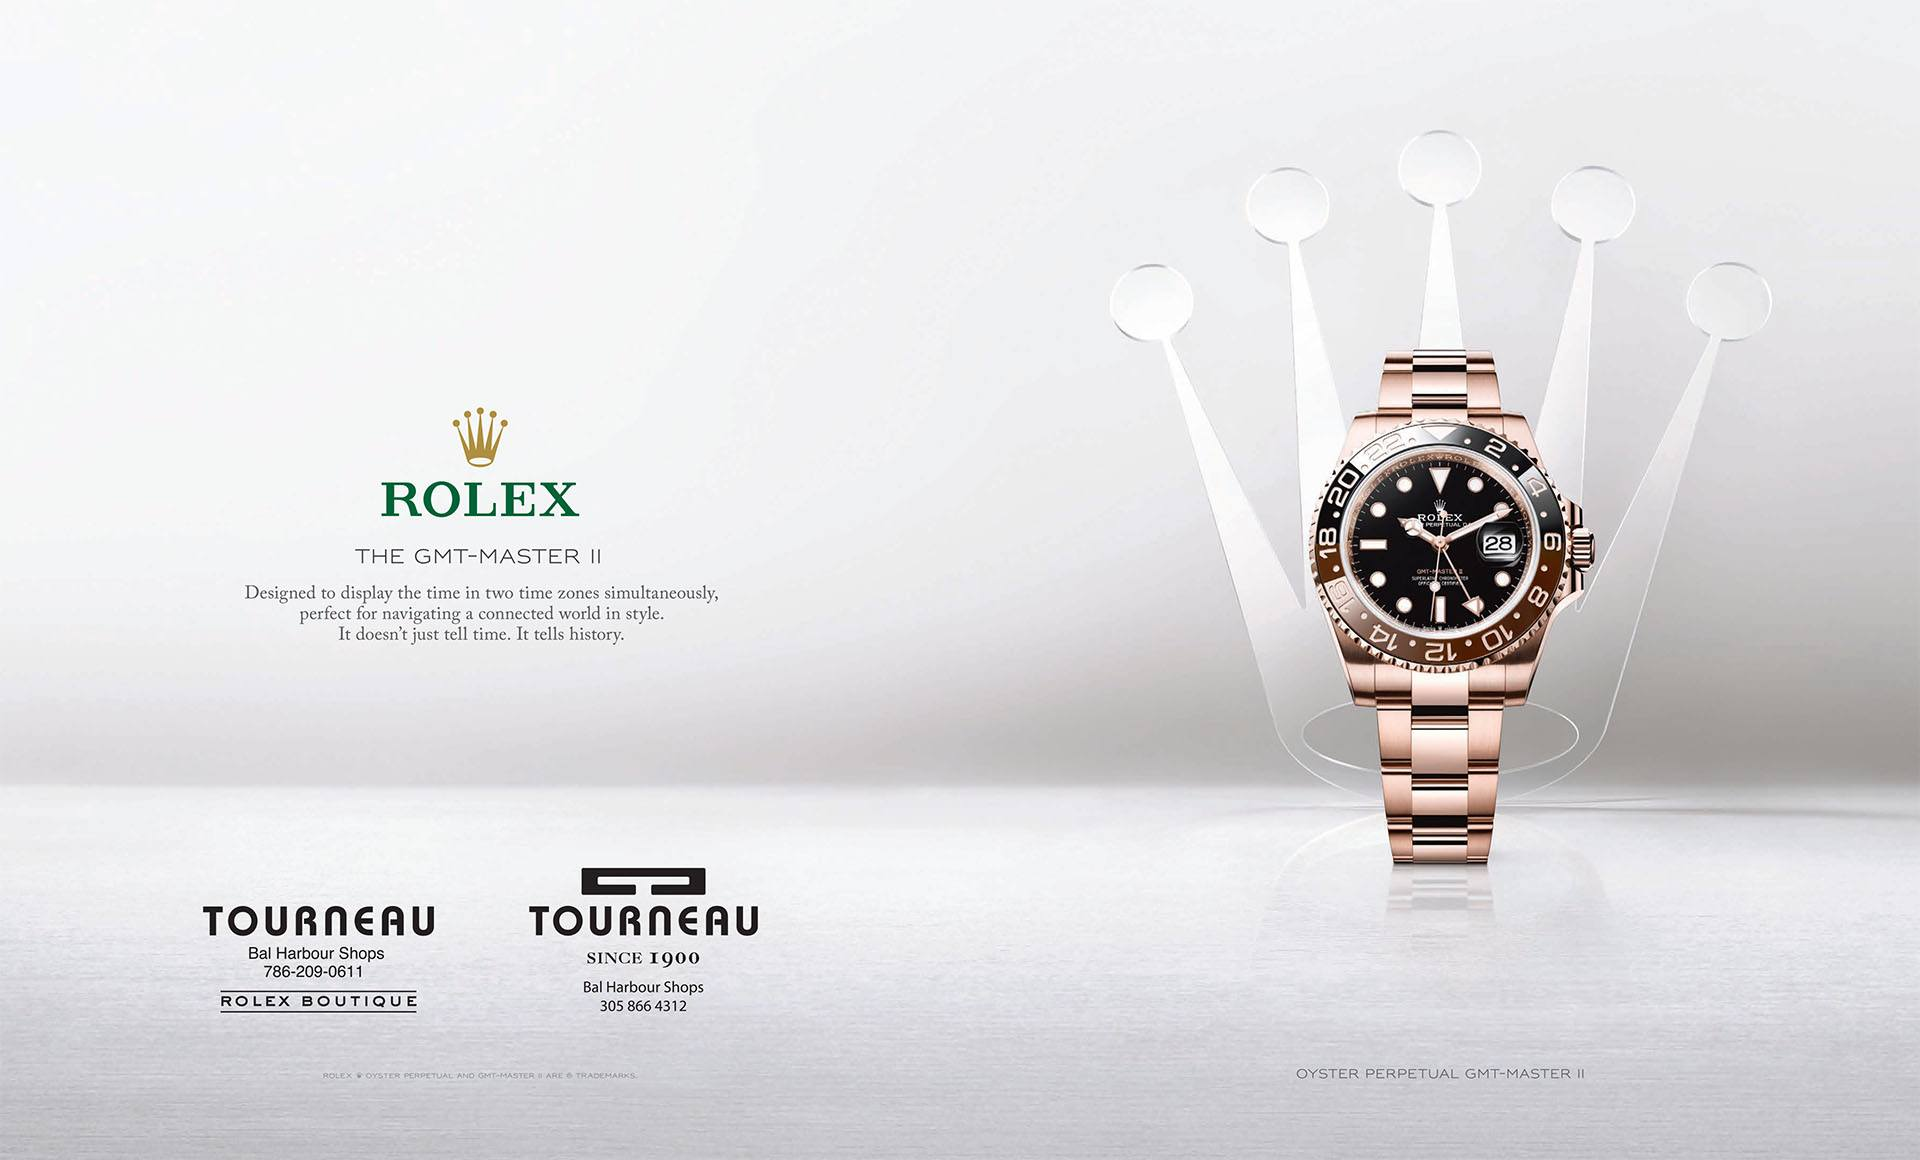 Rolex by Tourneau